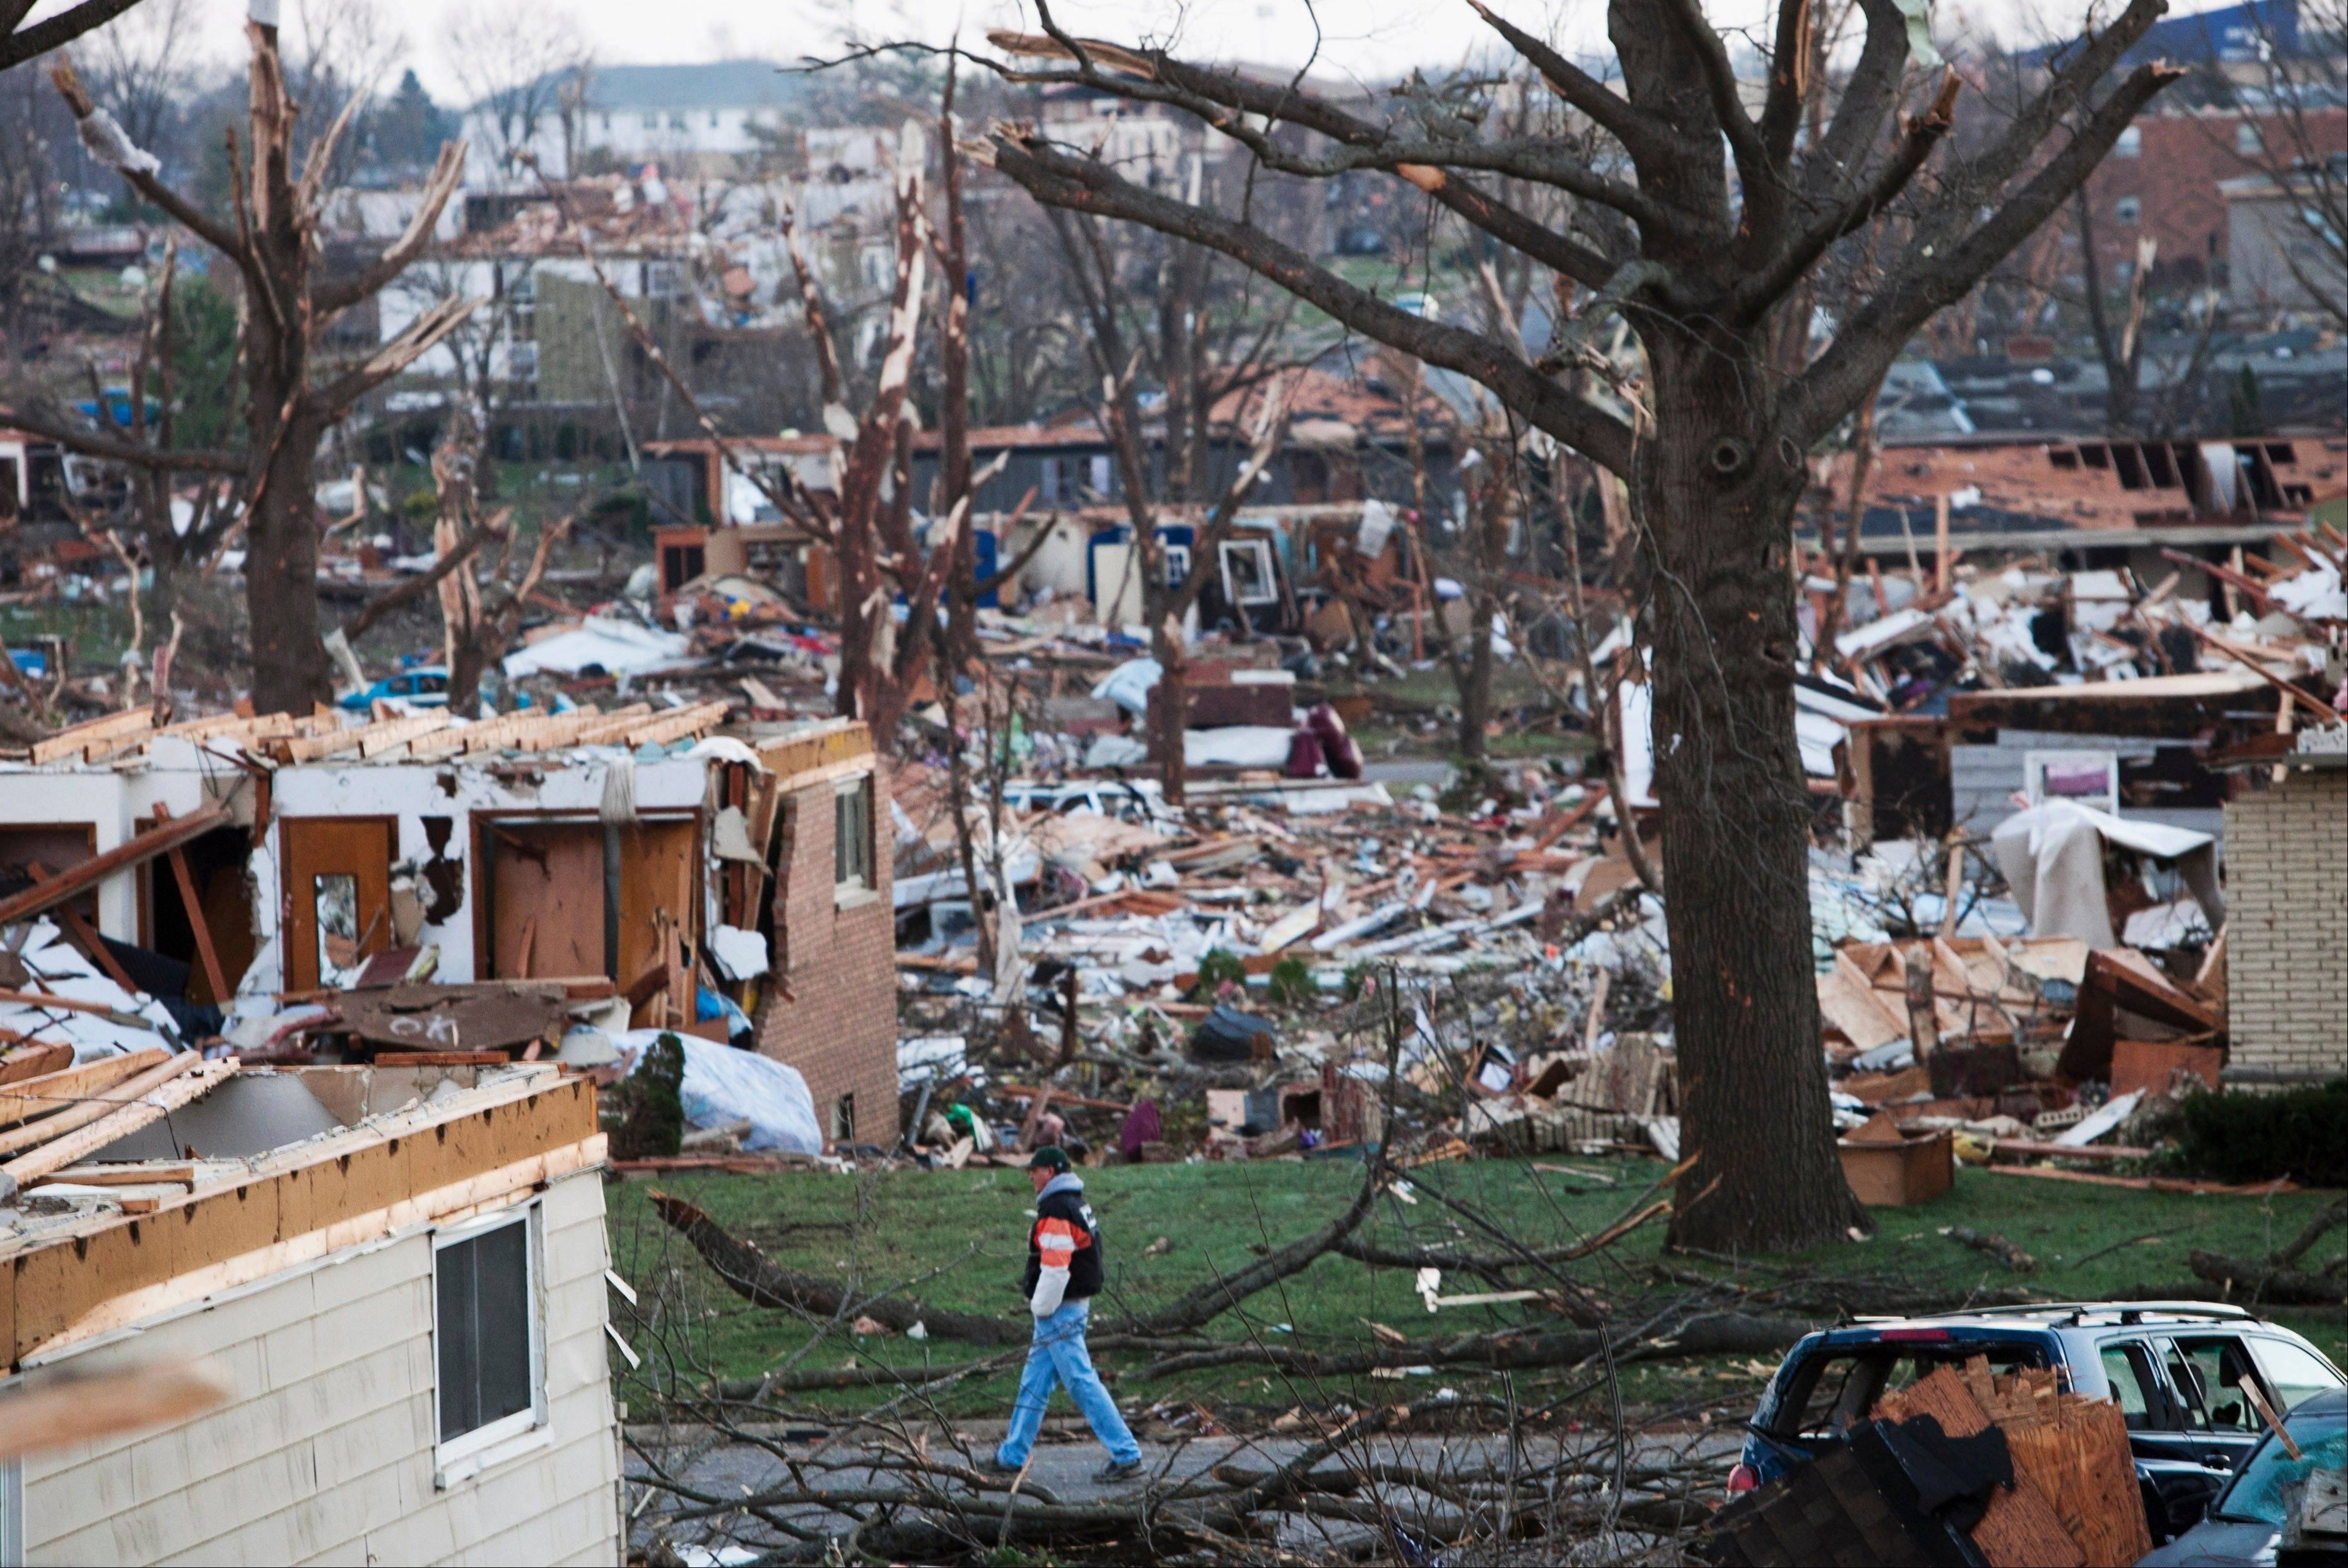 A man walks through what is left of a neighborhood in Washington, a day after a tornado ripped through the central Illinois town. The tornado cut a path about an eighth of a mile wide from one side of Washington to the other and damaged or destroyed as many as 500 homes.